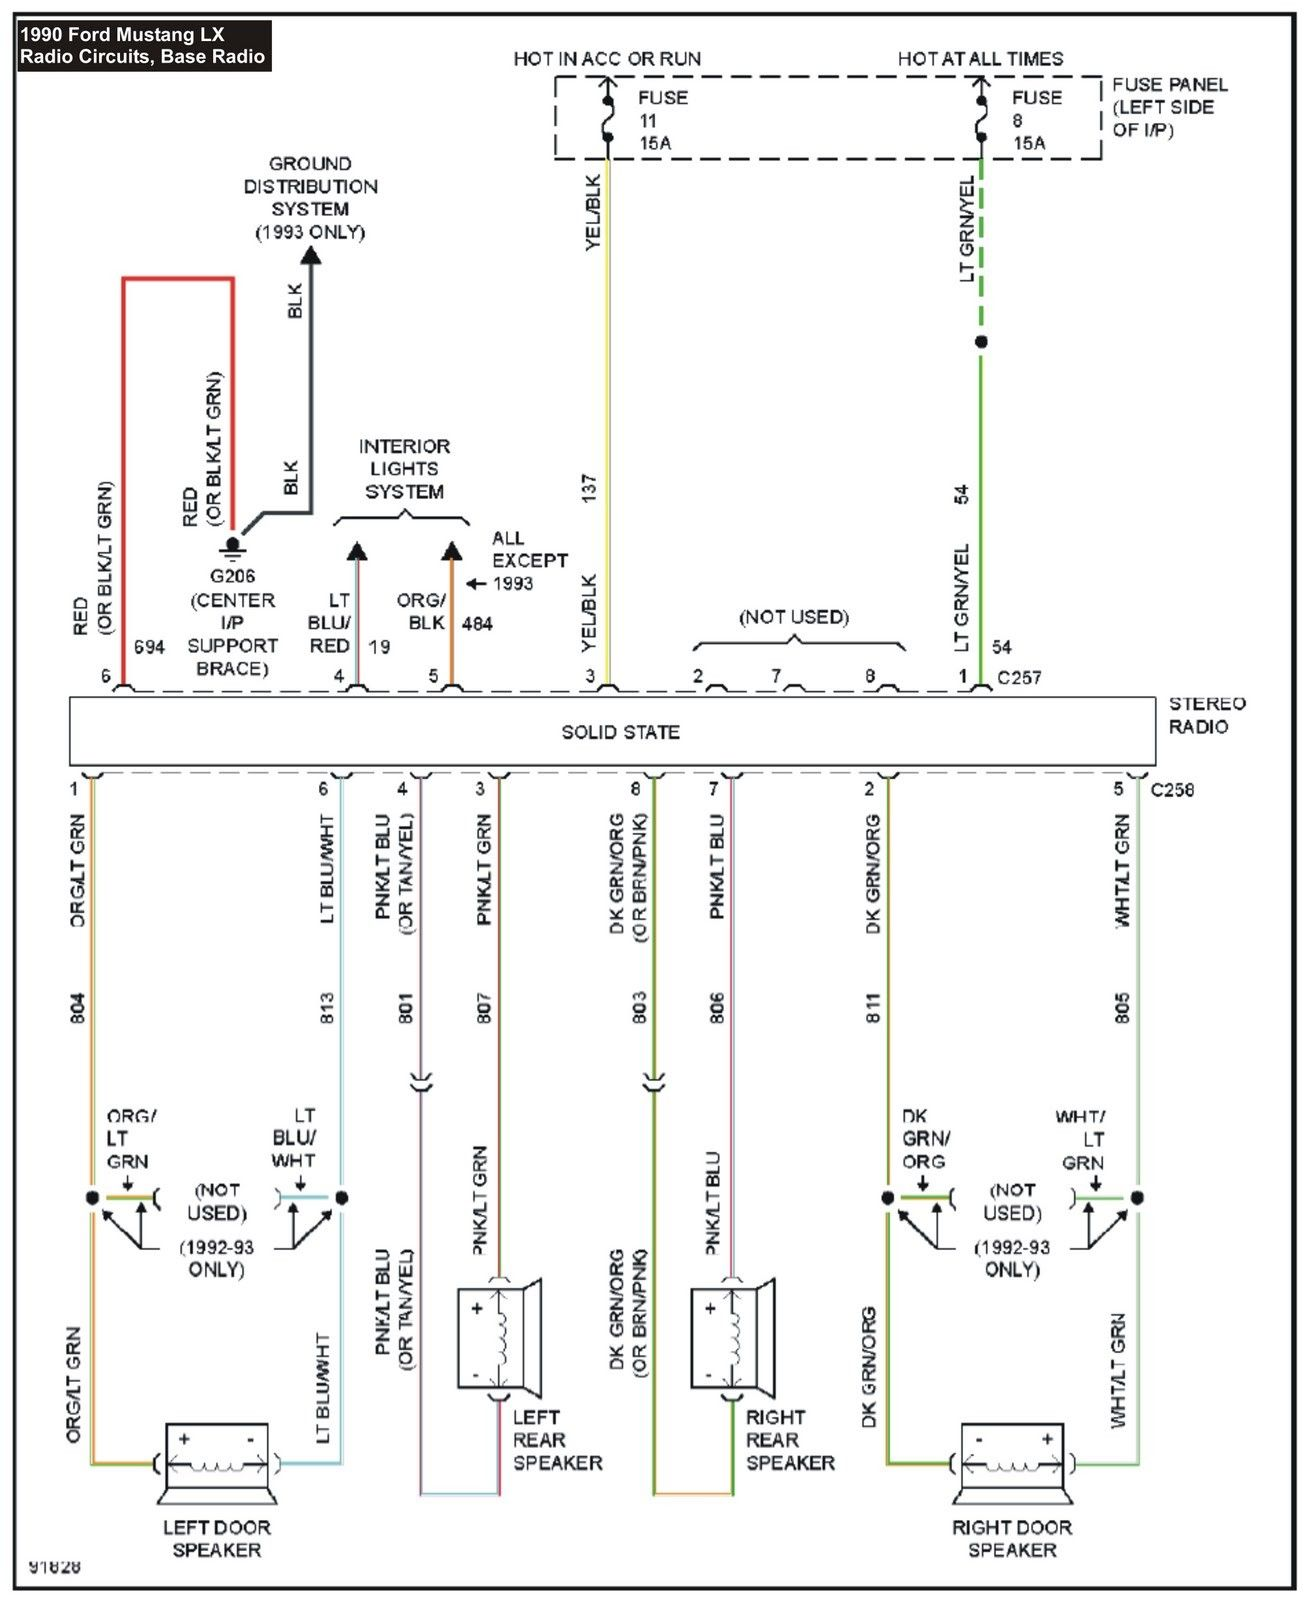 Unique Wiring Diagram For Ac Delco Radio Diagram